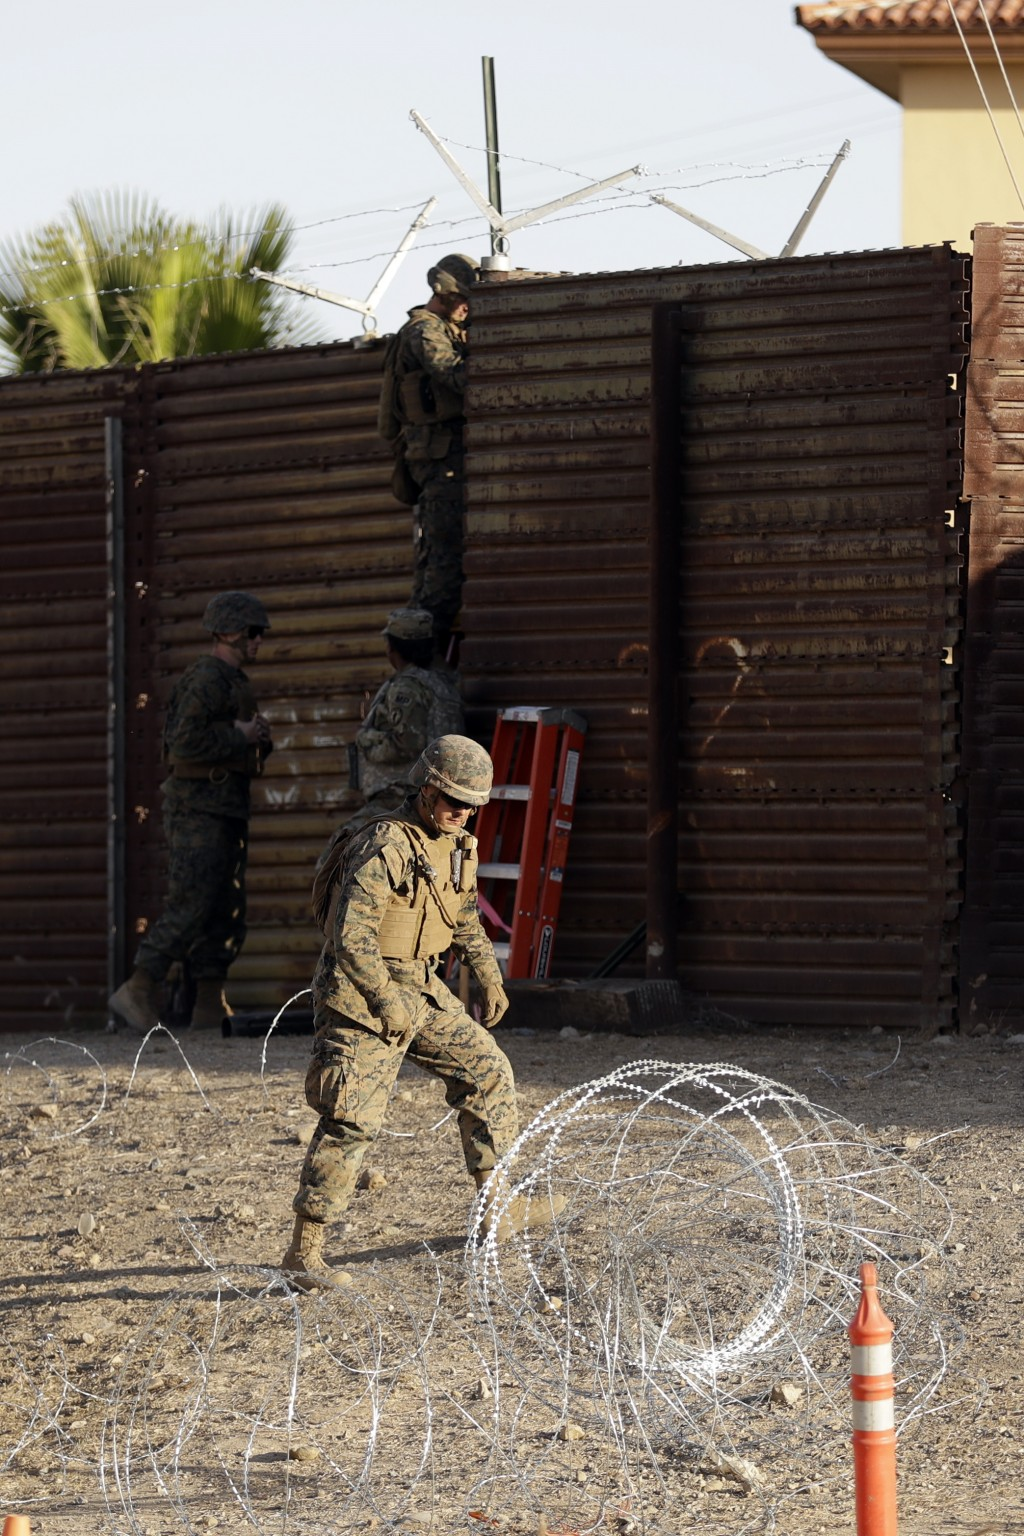 Marines work to fortify the border structure that separates Tijuana, Mexico, and San Diego, near the San Ysidro Port of Entry, Friday, Nov. 9, 2018, i